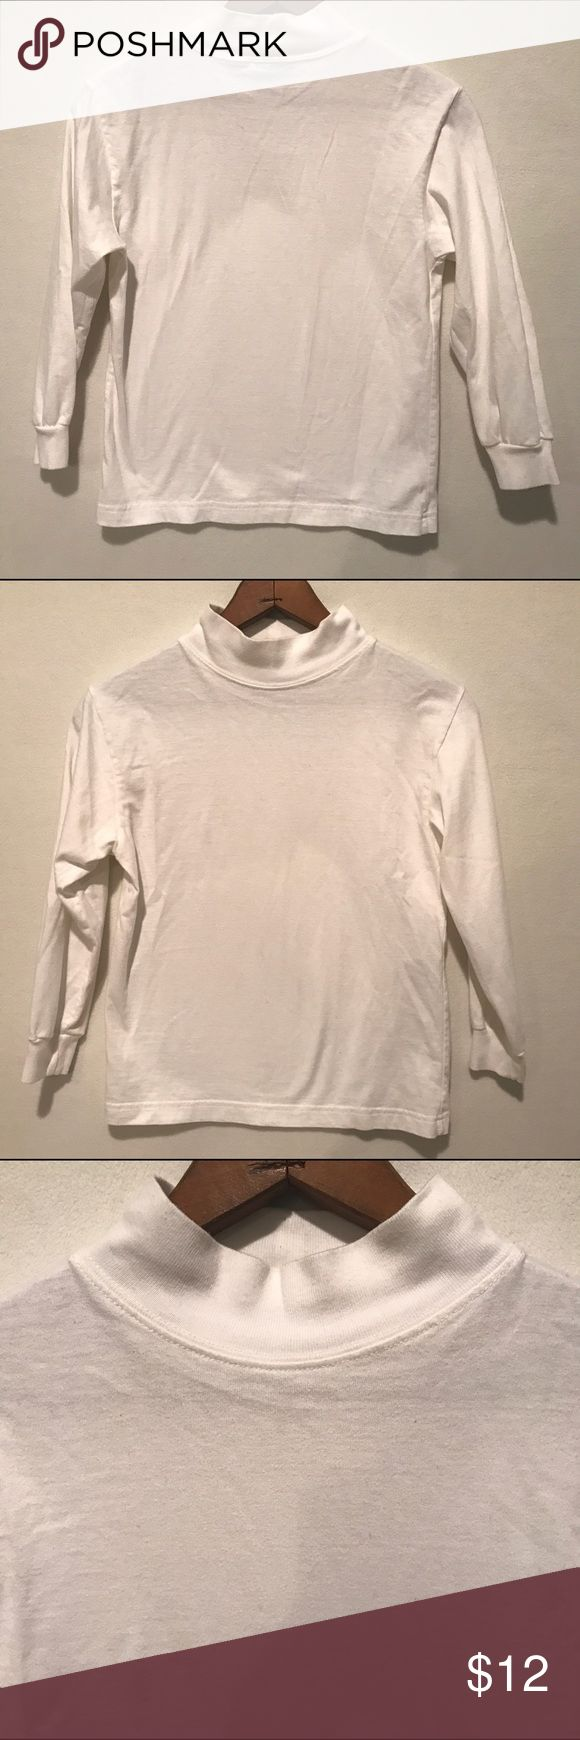 LL Kids by LL Bean Kids White Mock Turtleneck Reasonable offers considered 🛍 Bundle 2 or more items and save! 🎁 Bundle 5 items and I will reimburse the shipping fee 🎉.  White mock turtleneck for kids. Boys size S8. 100% cotton. Measures 14 inch armpit to armpit and 20 inch shoulder to bottom hem. Preloved and in excellent condition! L.L. Bean Shirts & Tops Tees - Long Sleeve